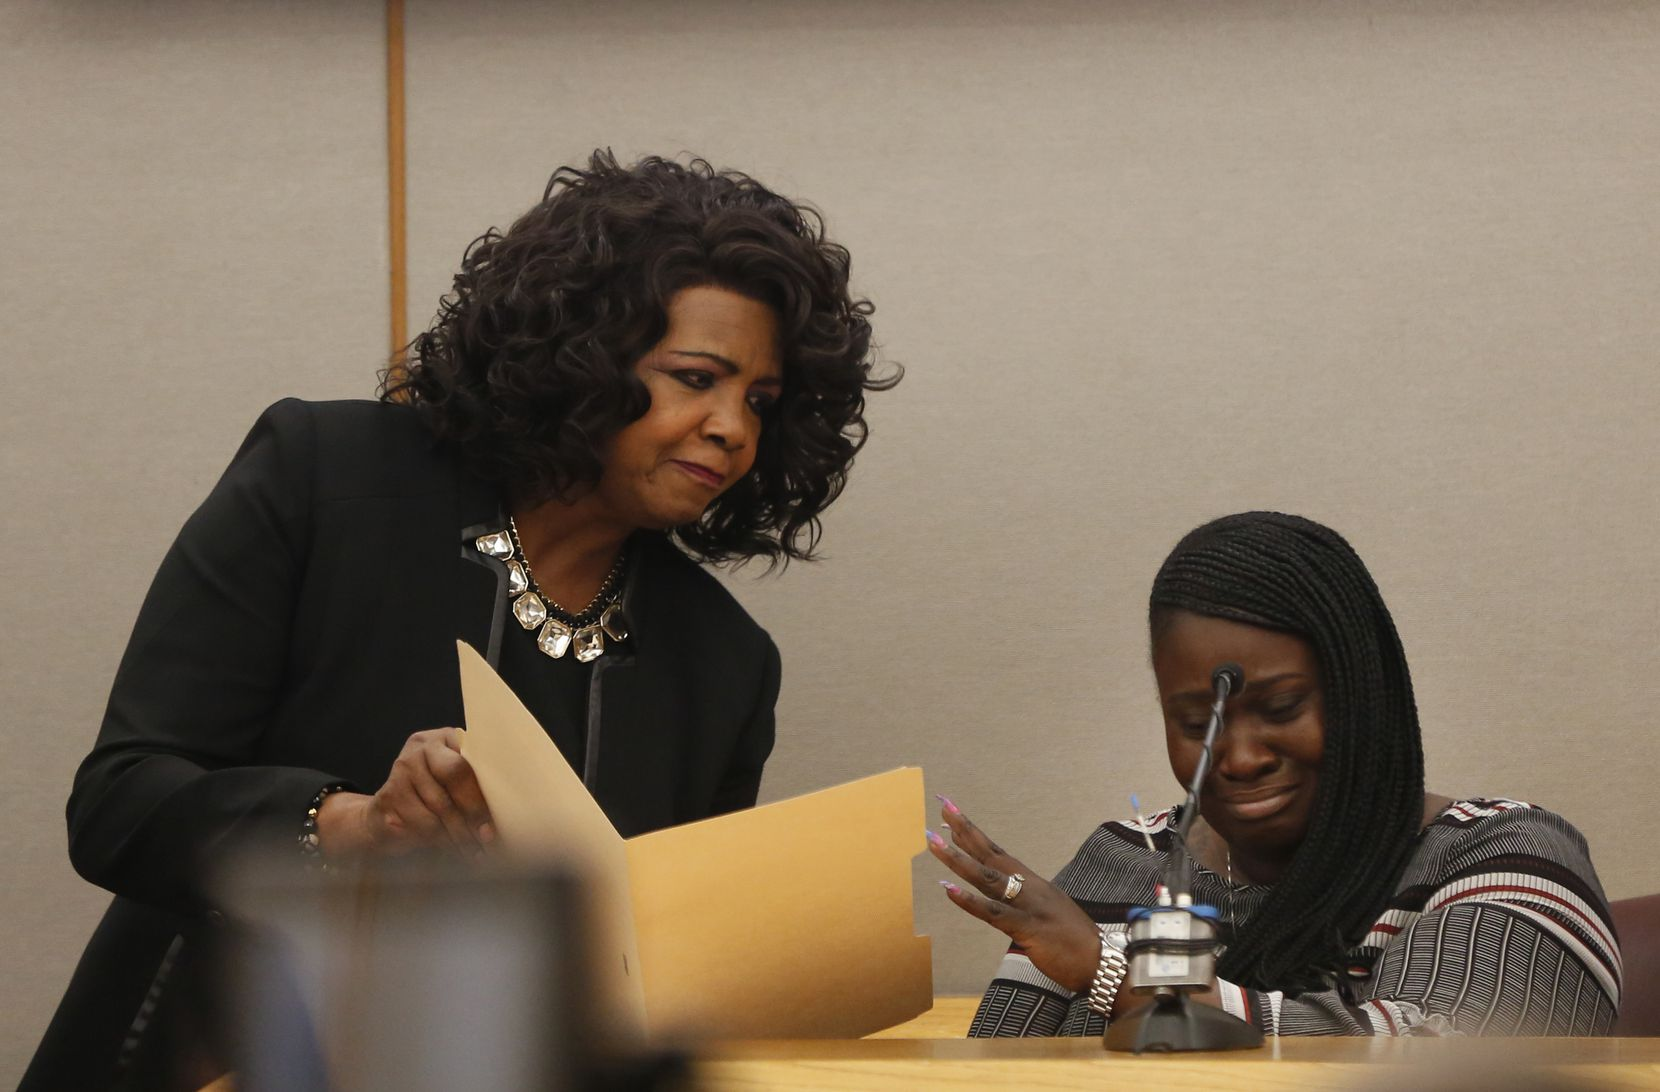 Charmaine Edwards reacts on Thursday, Aug. 16, to an autopsy photo of her son Jordan Edwards shown by District Attorney Faith Johnson during a testimony on the first day of the trial of fired Balch Springs police officer Roy Oliver. Oliver faces murder charges in the death of 15-year-old Jordan Edwards in the Crowley Courts Building in Dallas.